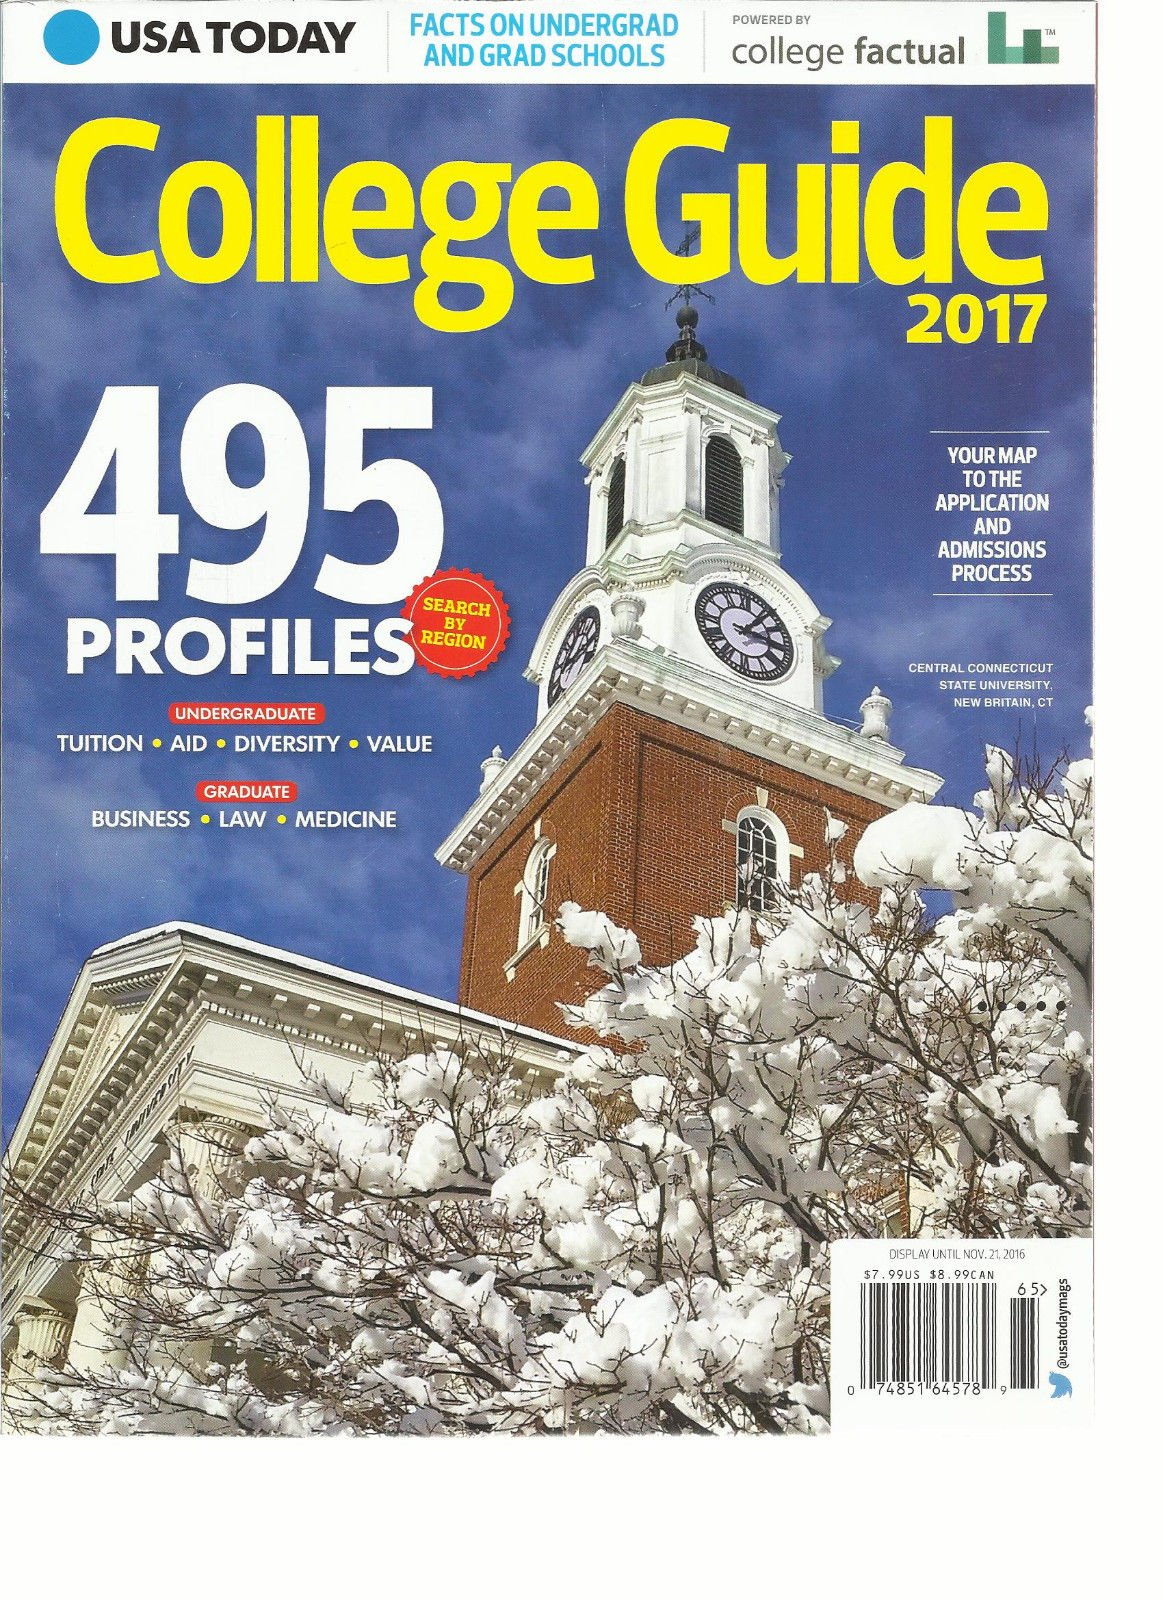 USA TODAY COLLEGE GUIDE, 2017 IN PARTNERSHIP WITH COLLEGE FACTUAL * 495 PROFILES